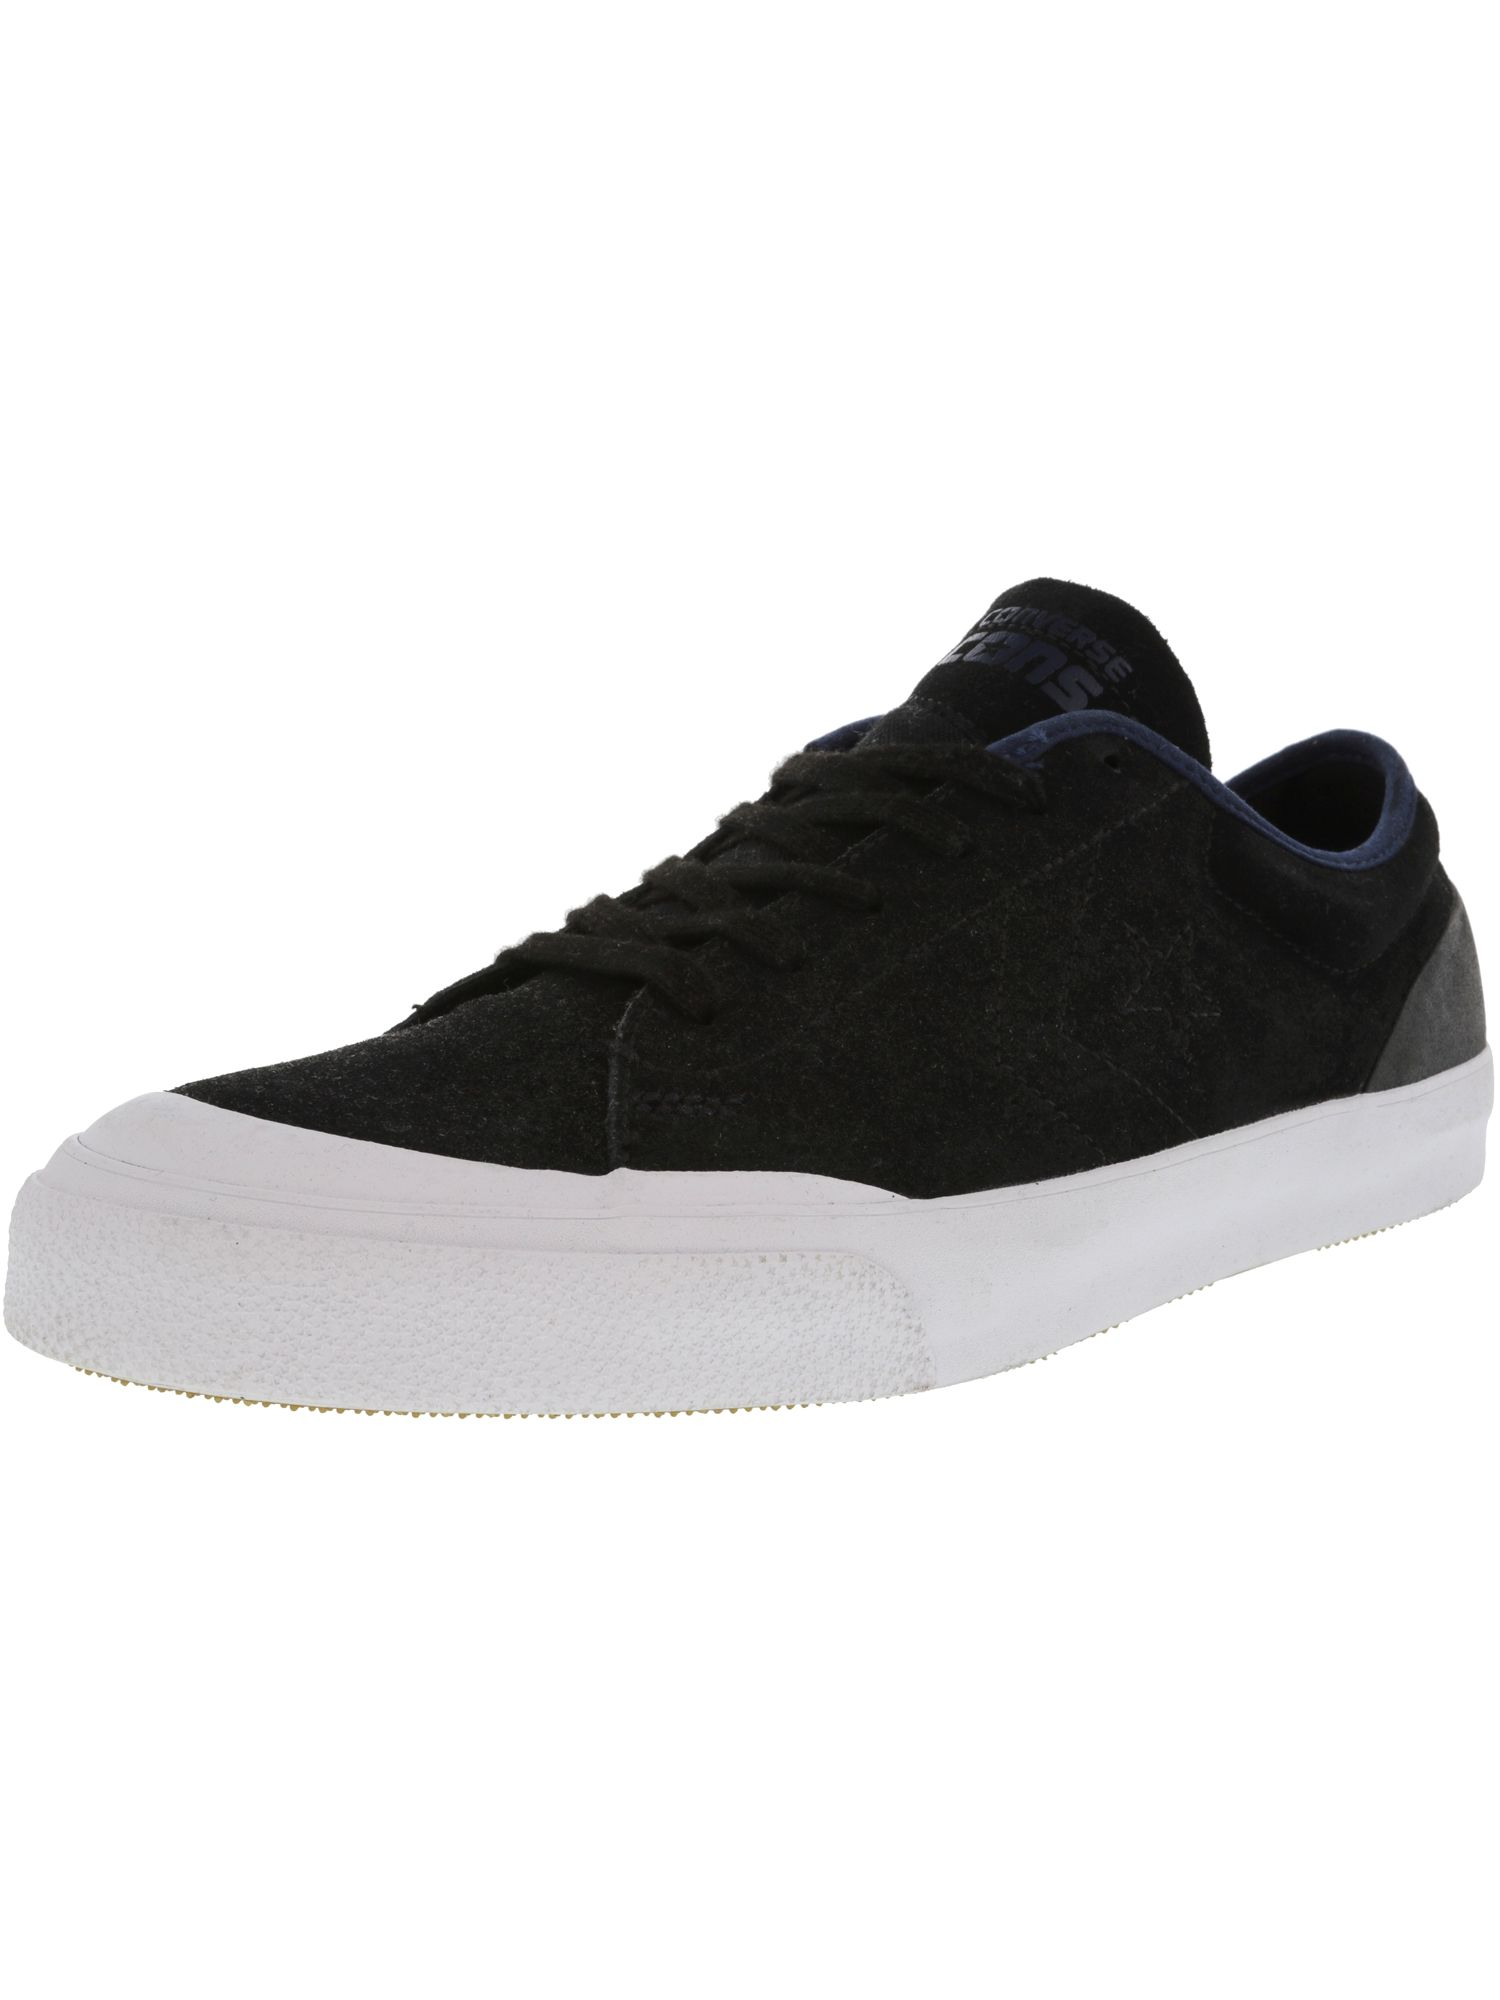 6b8a5ec129f CONVERSE CONVERSE MEN S CONS SUMNER OX ANKLE-HIGH LEATHER SKATEBOARDING SHOE.   converse  shoes